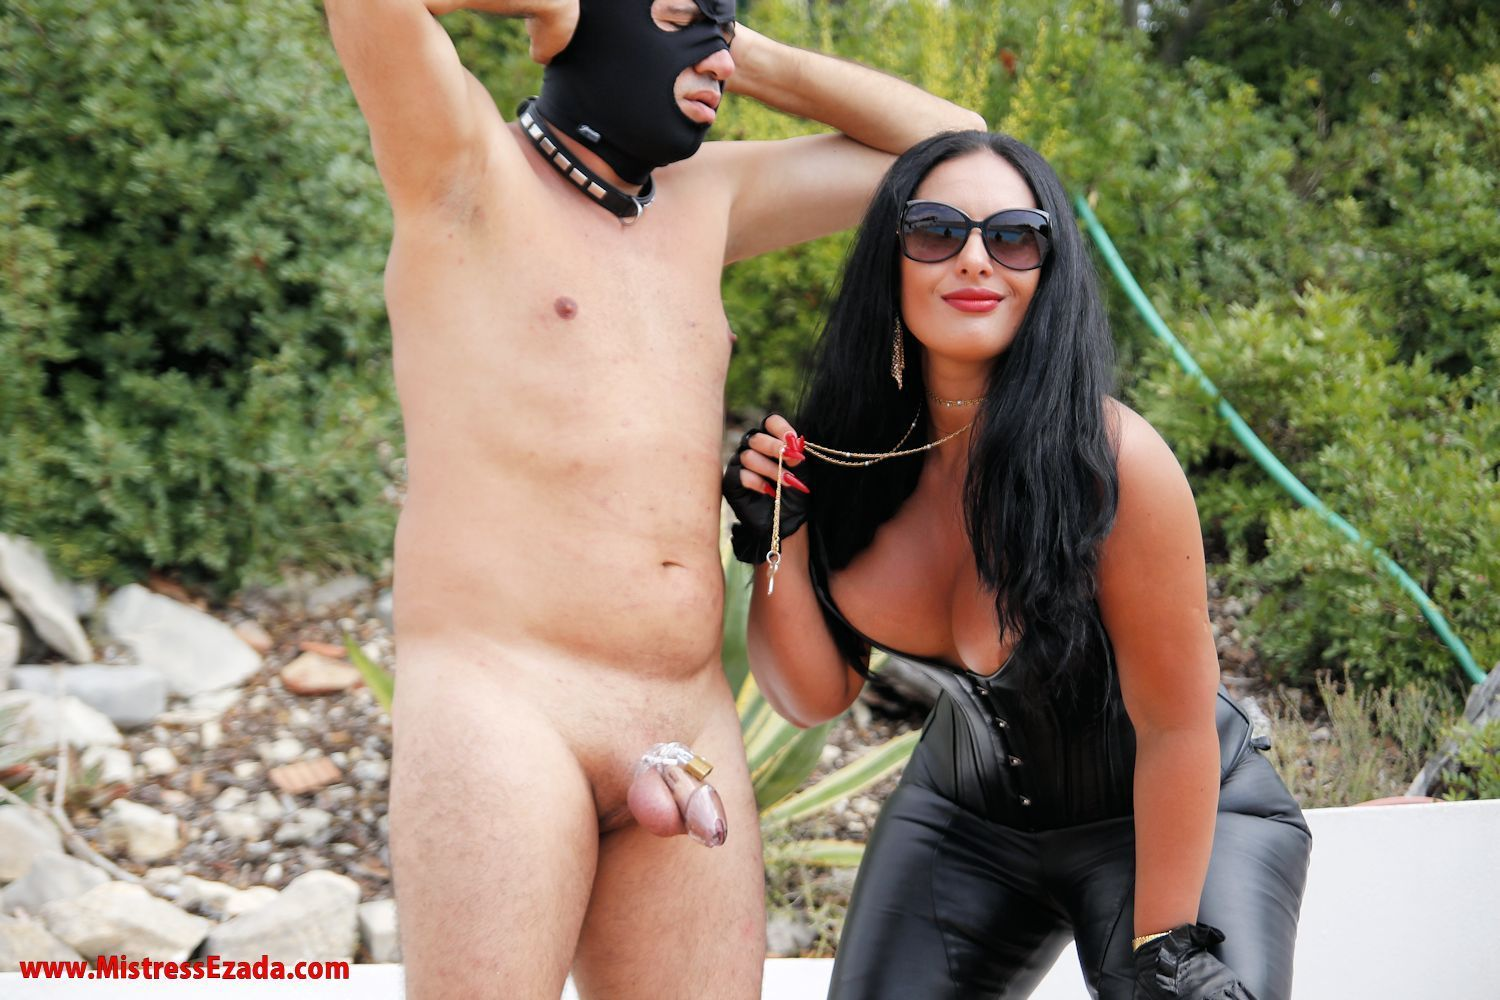 Female domination and male chastity